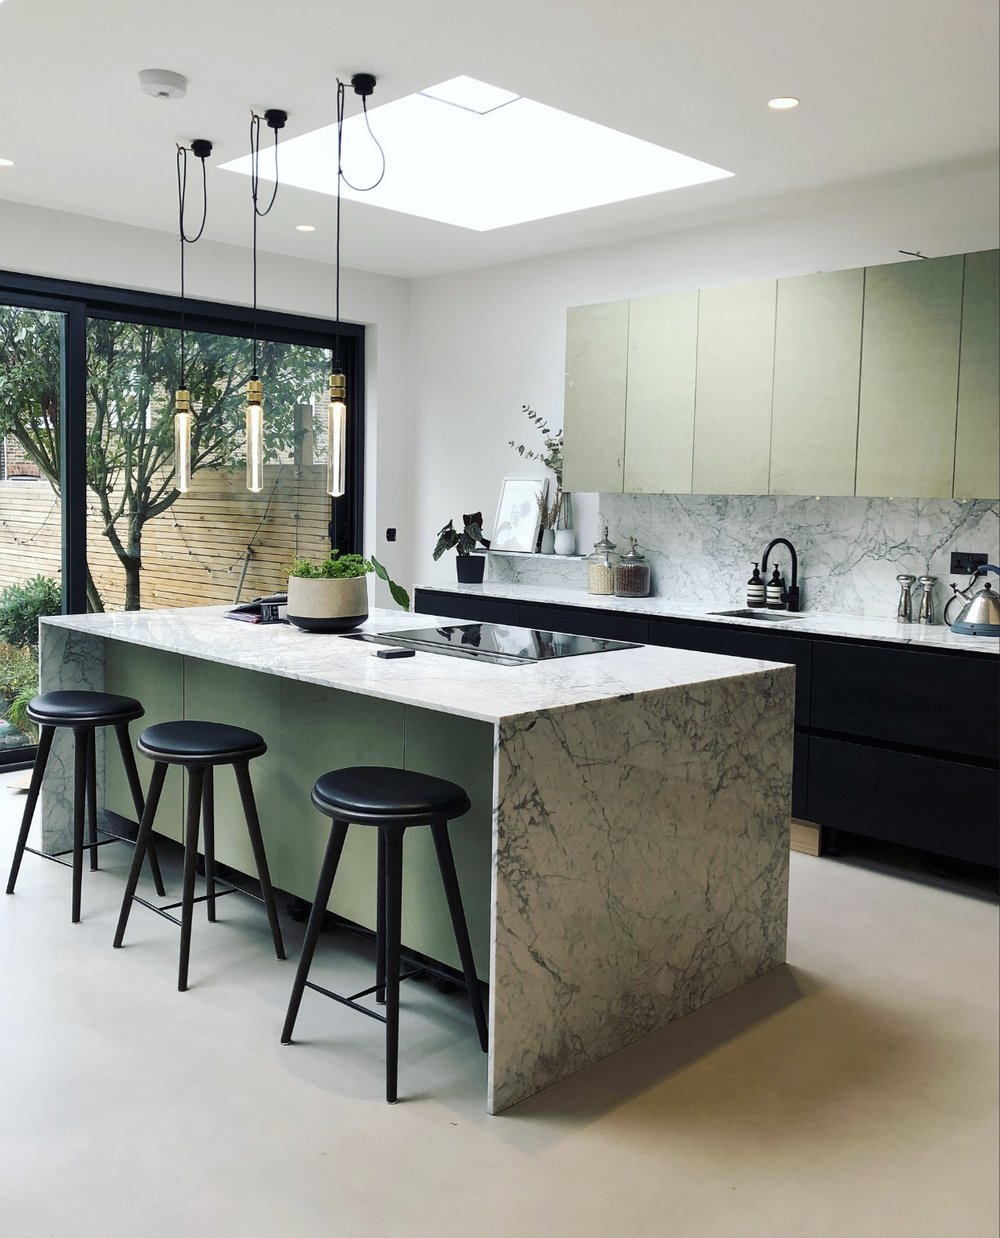 Abby's beautiful finished kitchen….. I'm dreaming of marble tops like this in our next kitchen…..